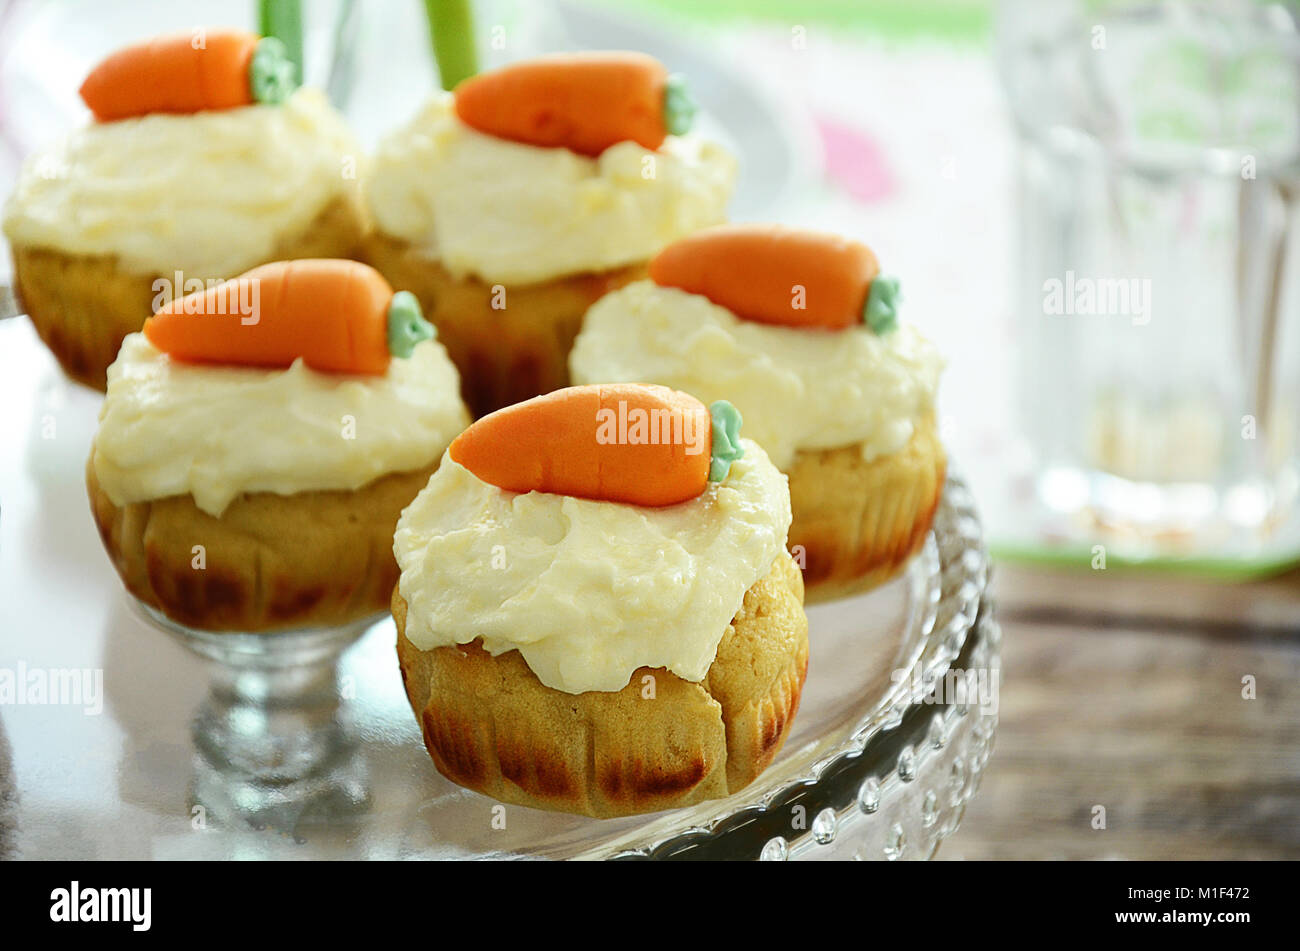 Easter cupcakes with cream cheese frosting and marzipan carrots on cake stand Stock Photo